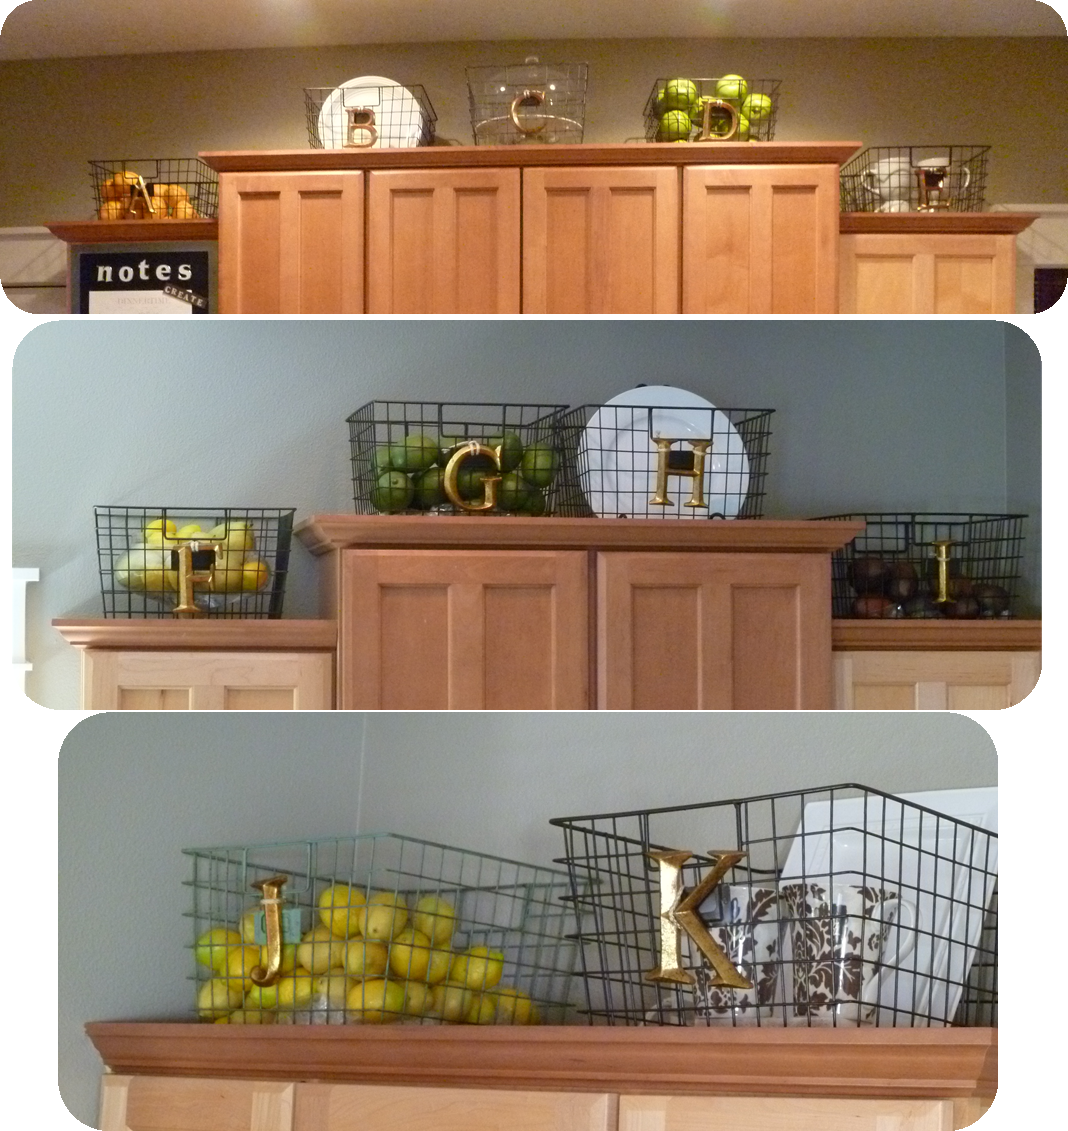 My suite bliss kitchen baskets for Baskets for kitchen cabinets